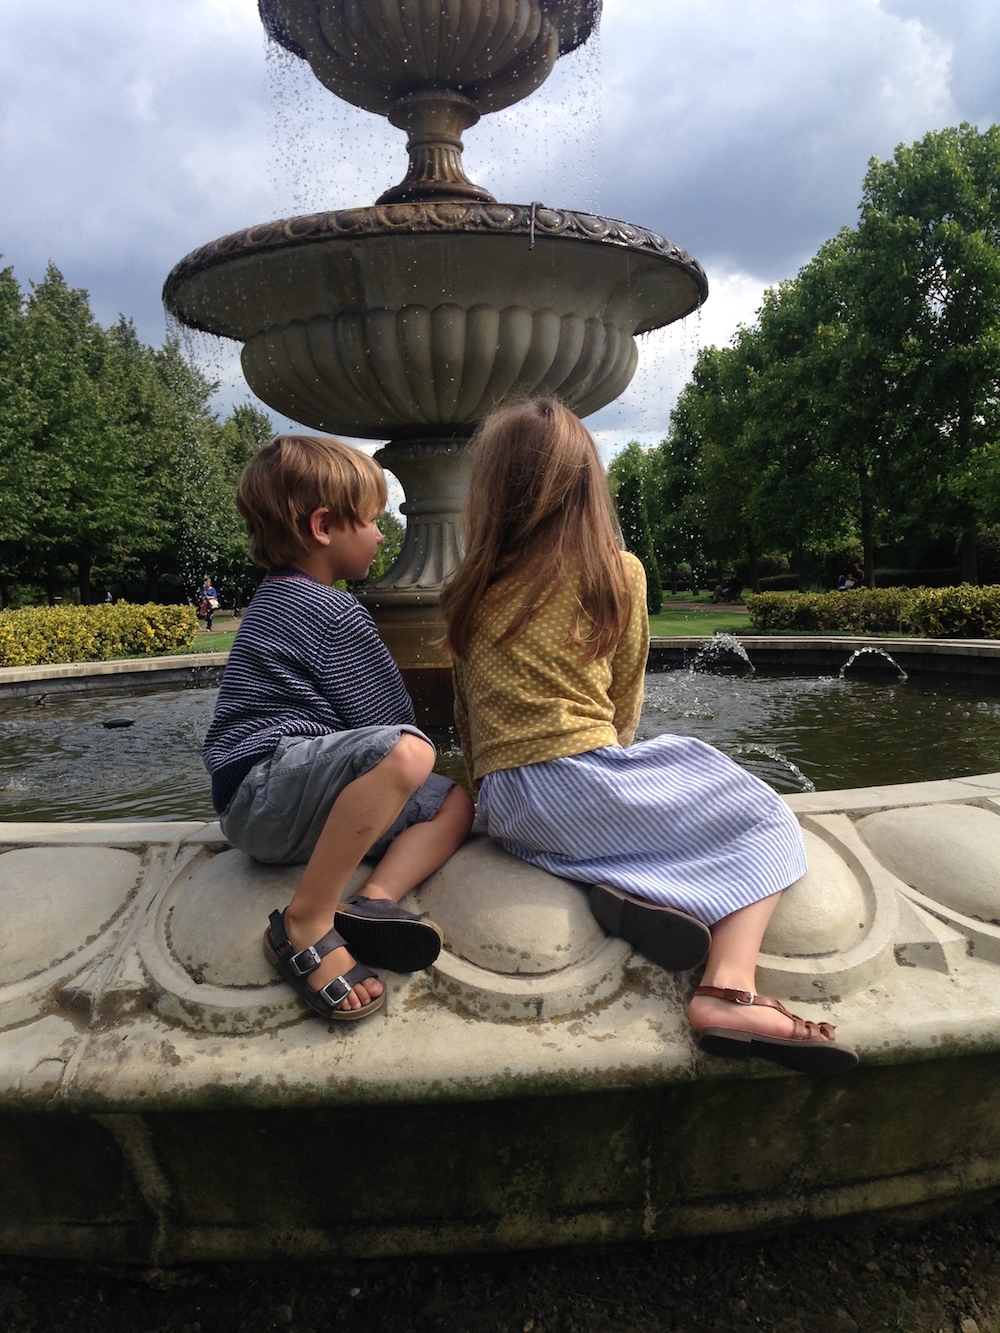 The kids at Regents Park Fountains